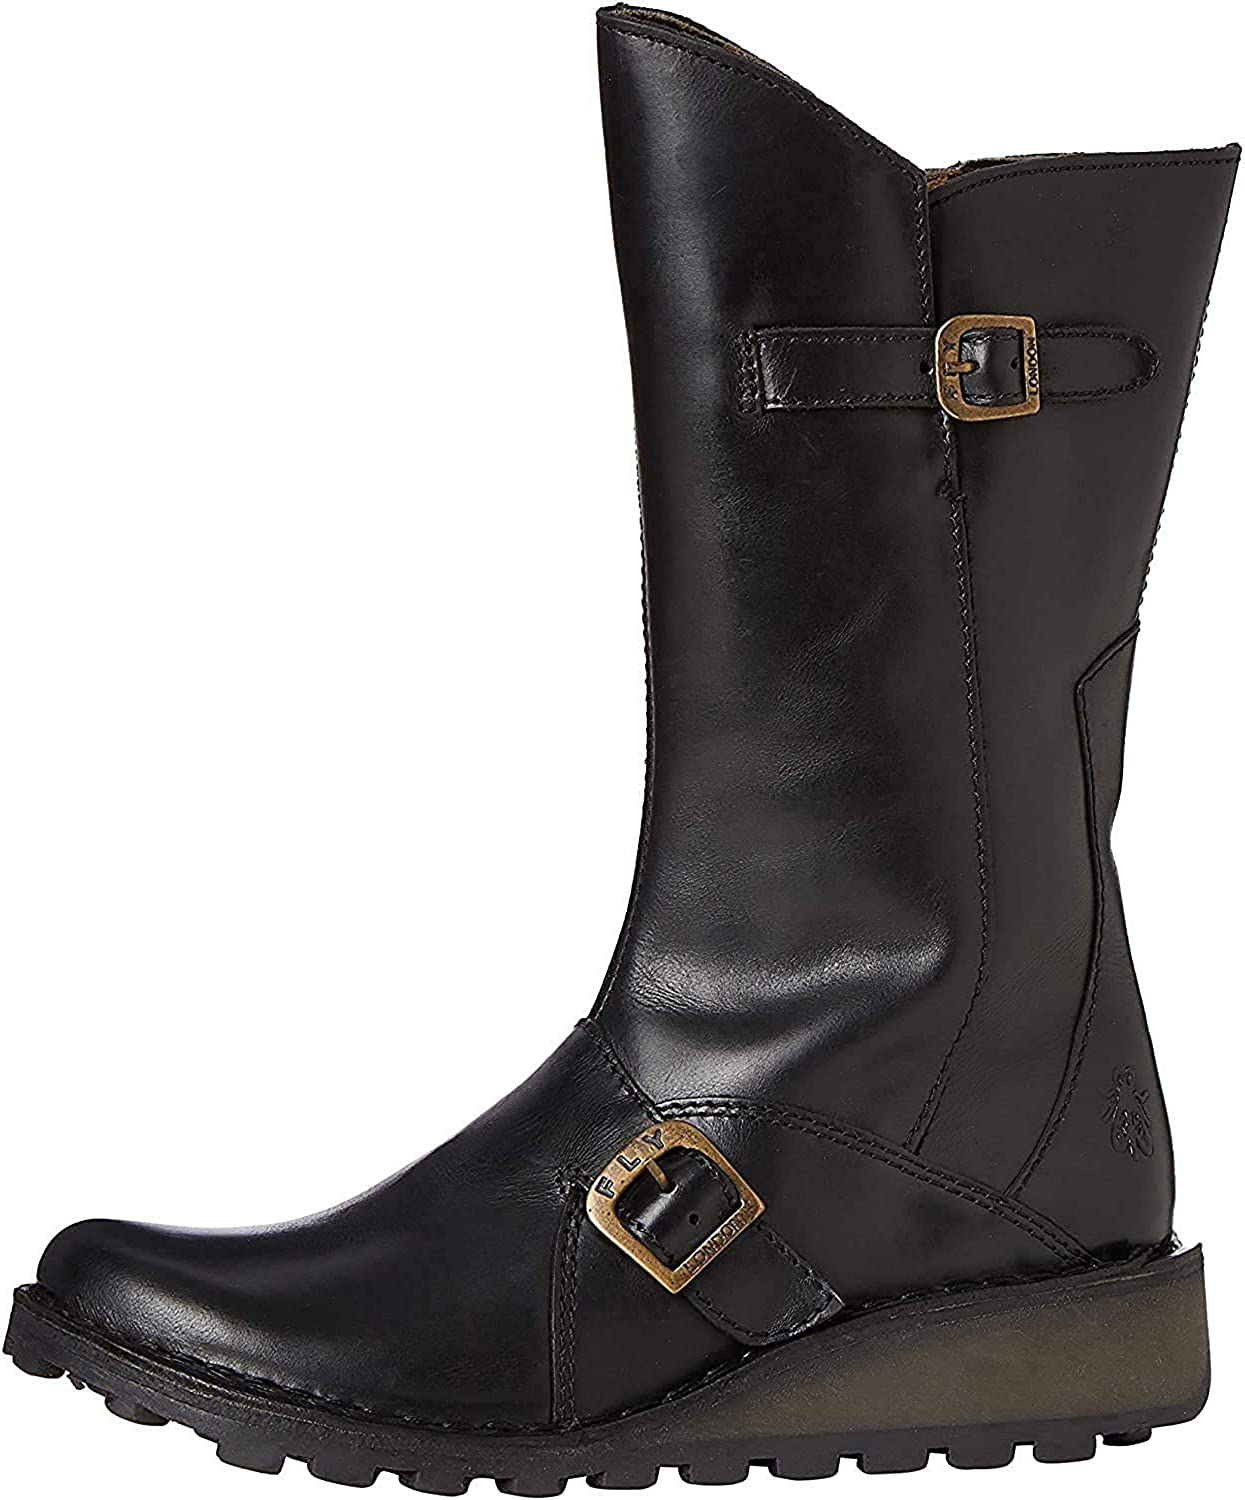 FLY London Mes 2 Black Leather Womens